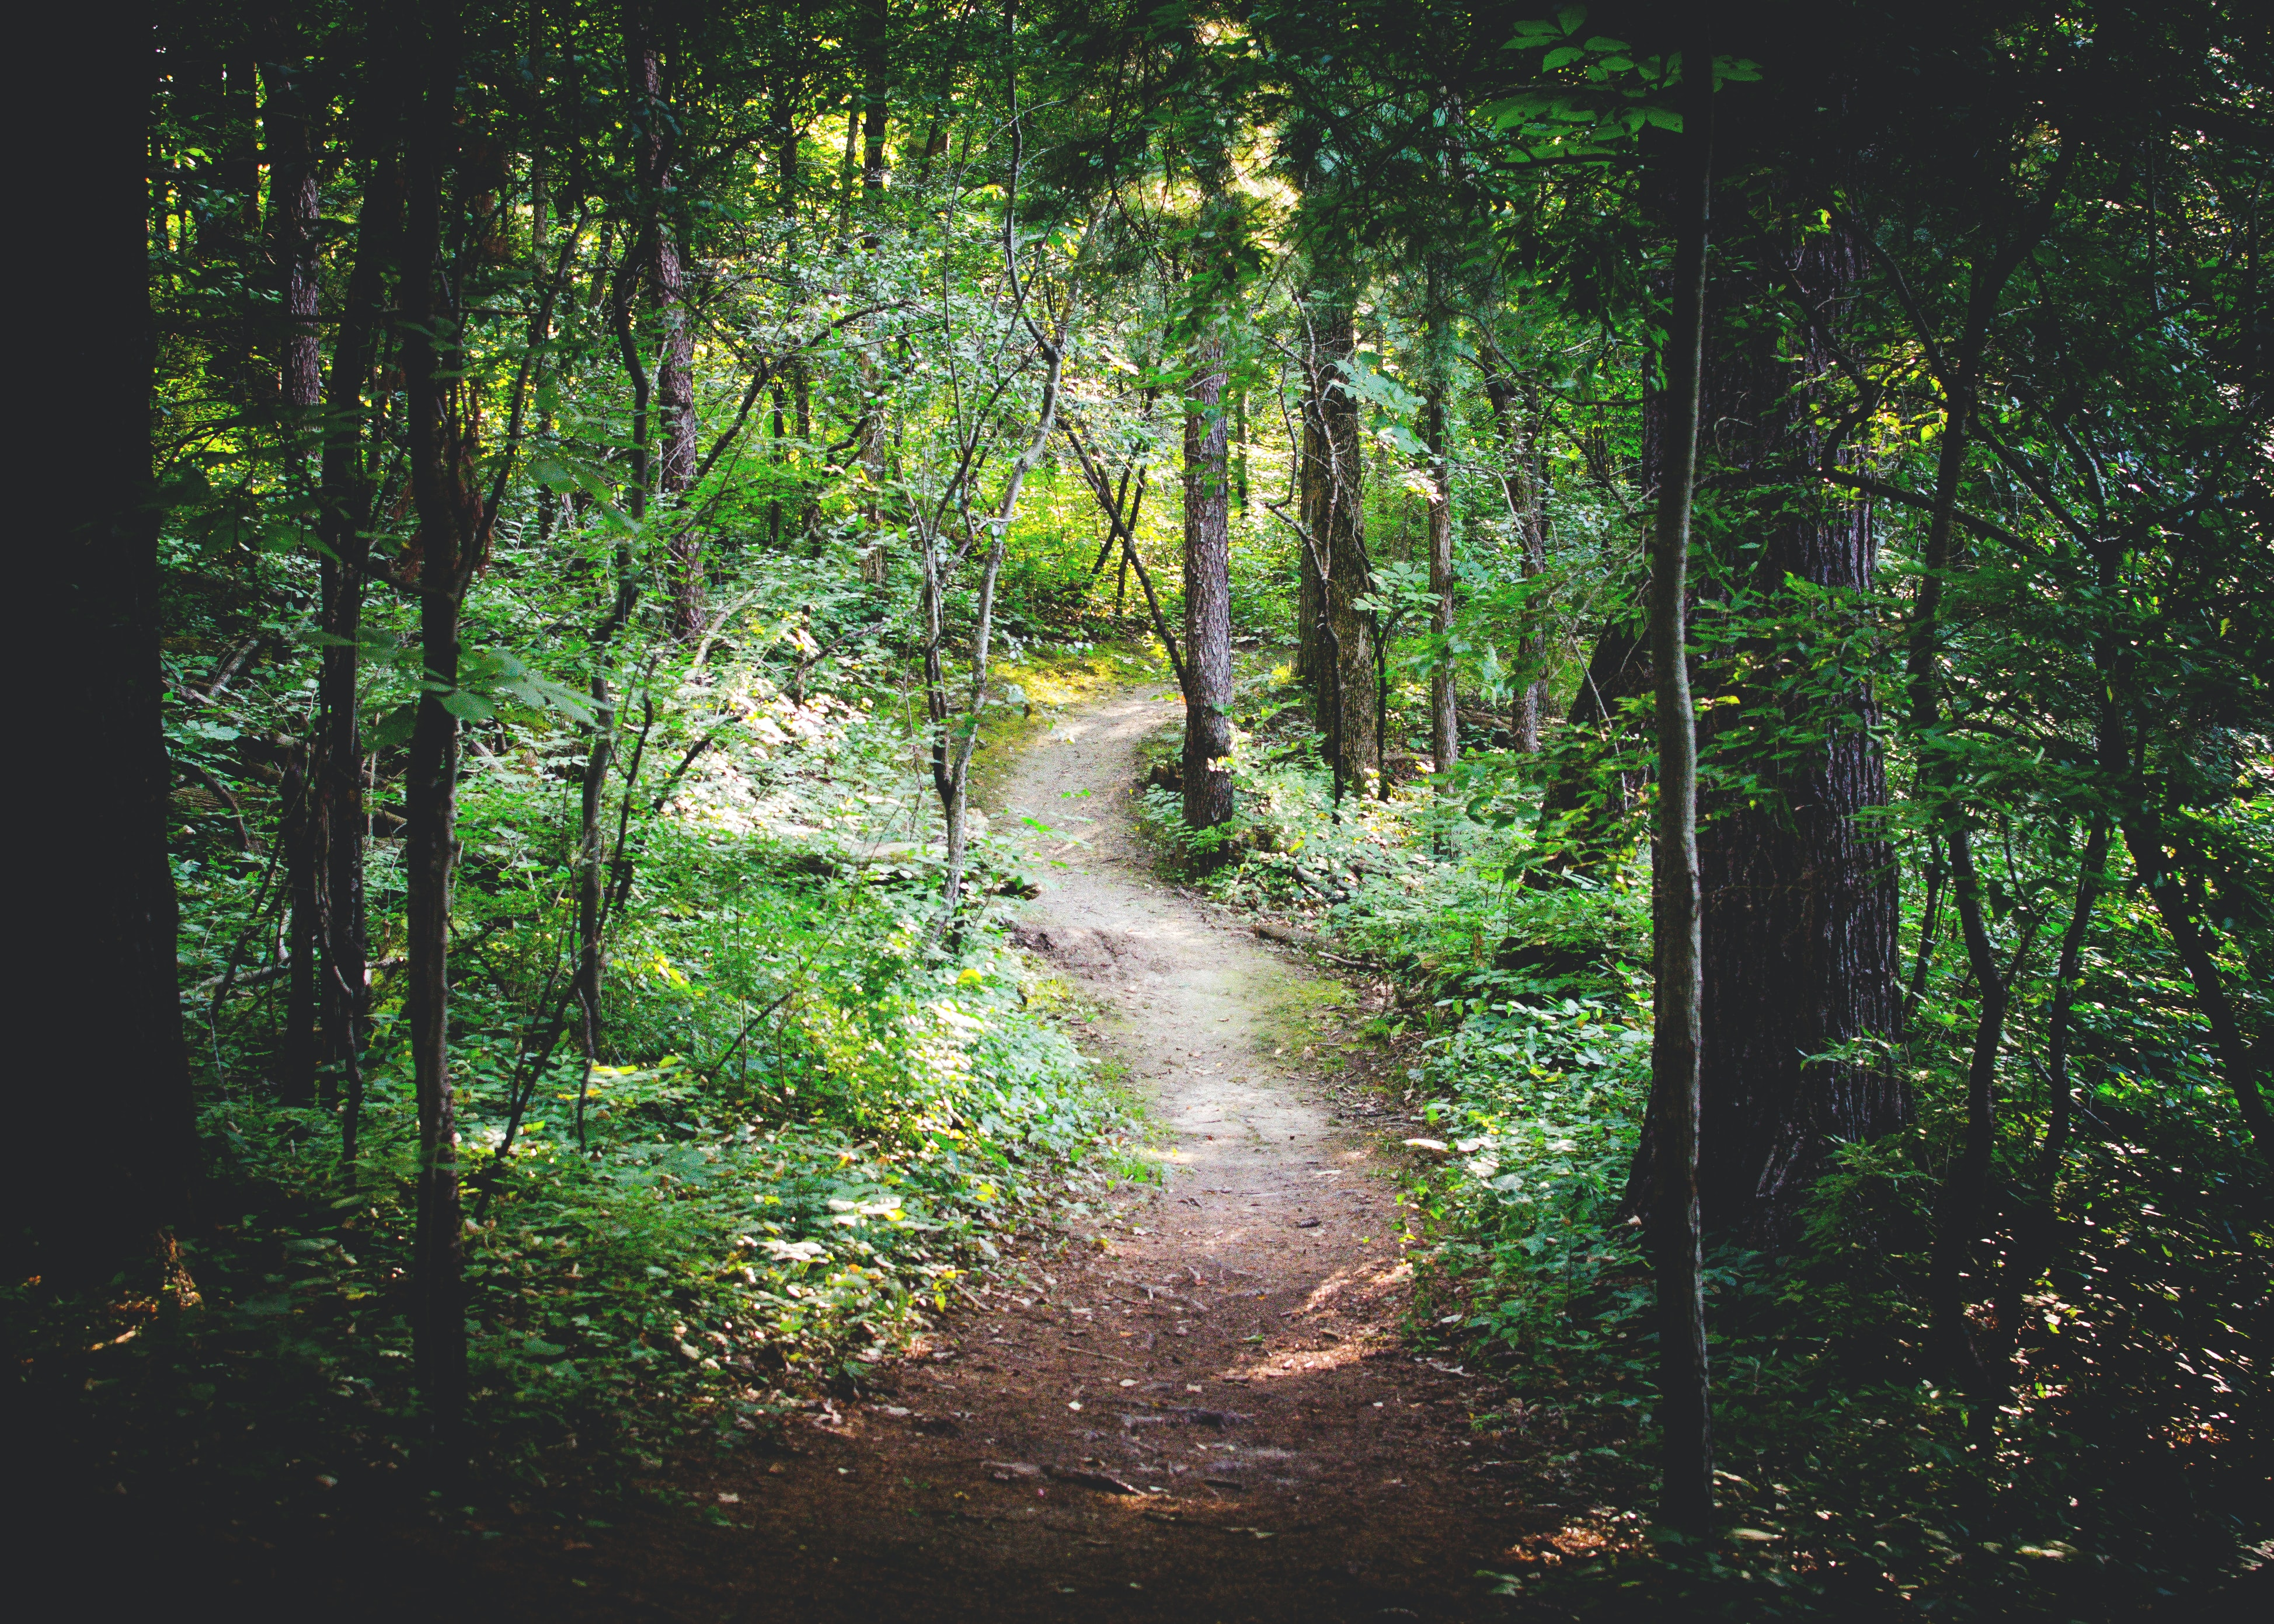 A dirt trail in a forest with green leaves, trees, and plants